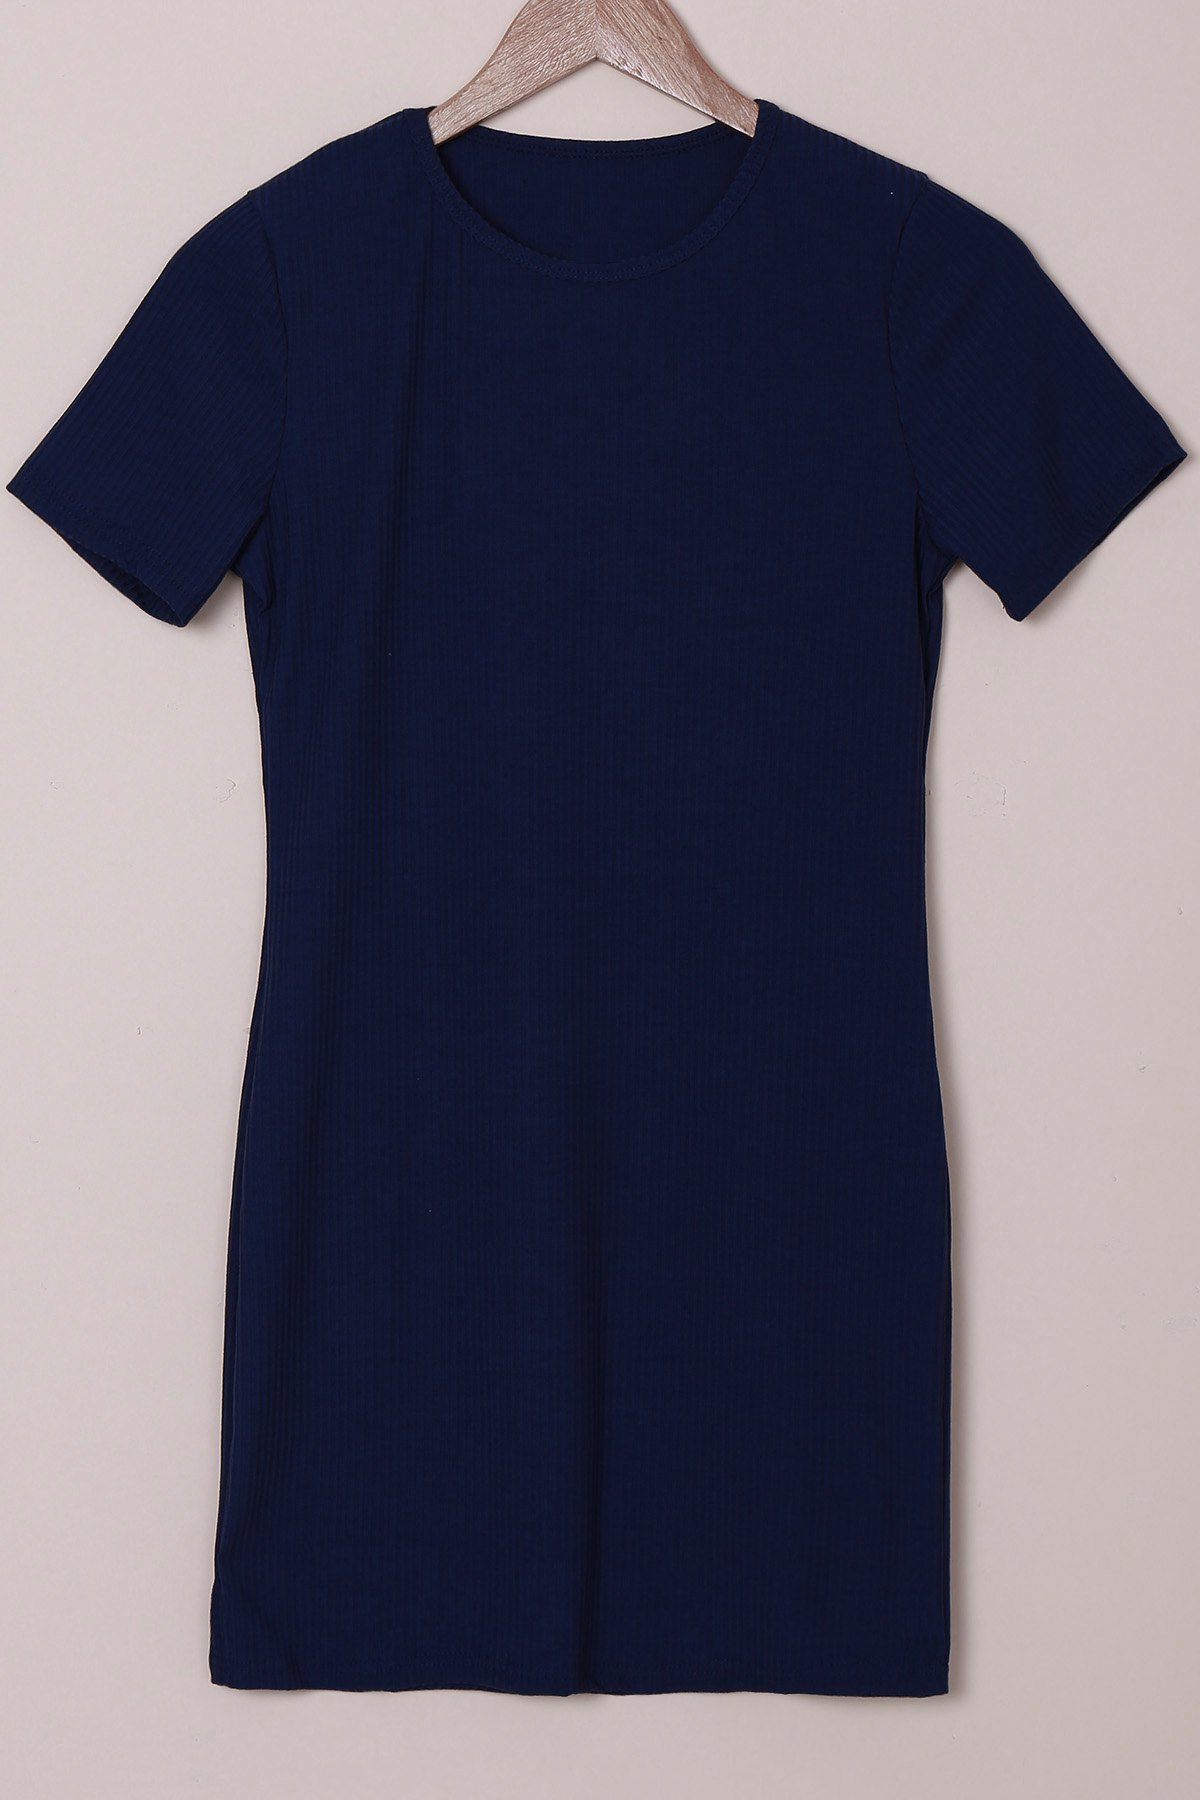 Brief Purplish Blue Round Collar Short Sleeve Dress For Women